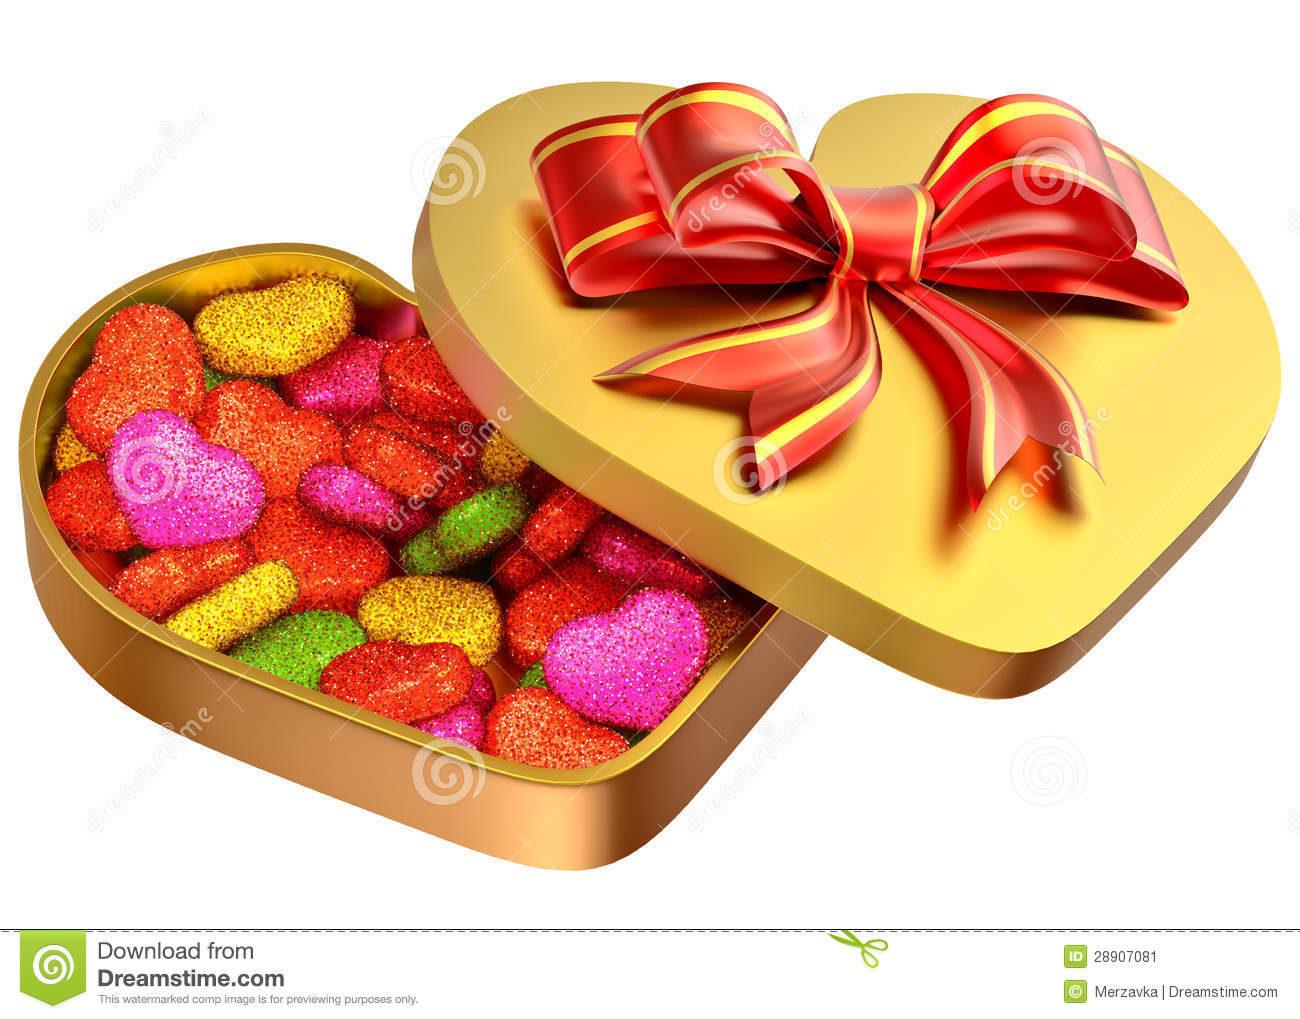 Candy In A Box As A Gift For Valentine S Day Stock Image Image Of